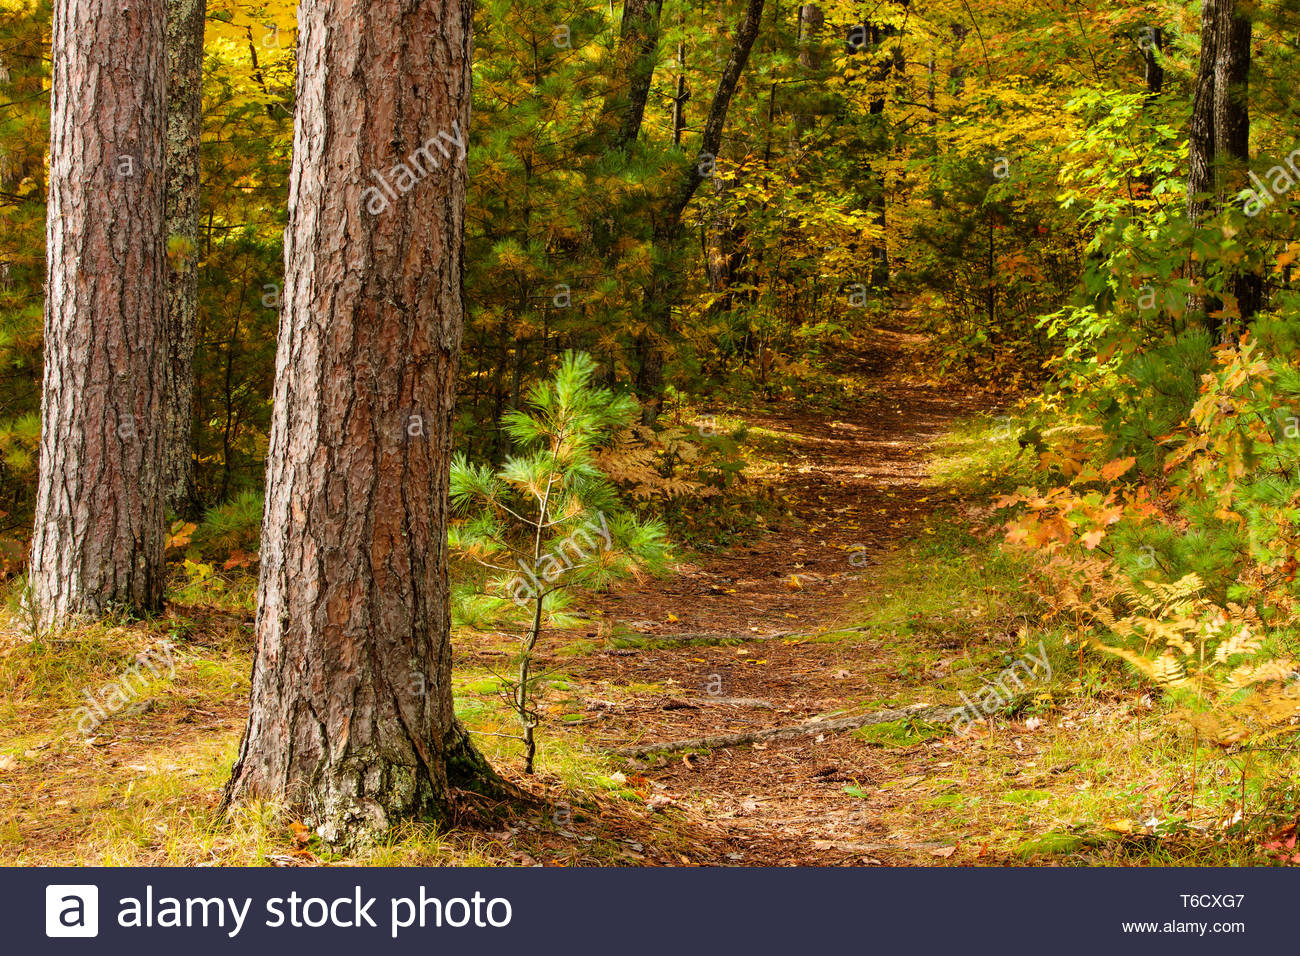 Autumn Colors In Vilas Park Lagoon >> A Nature Trail Through The Woods At Firefly Lake State Park Near